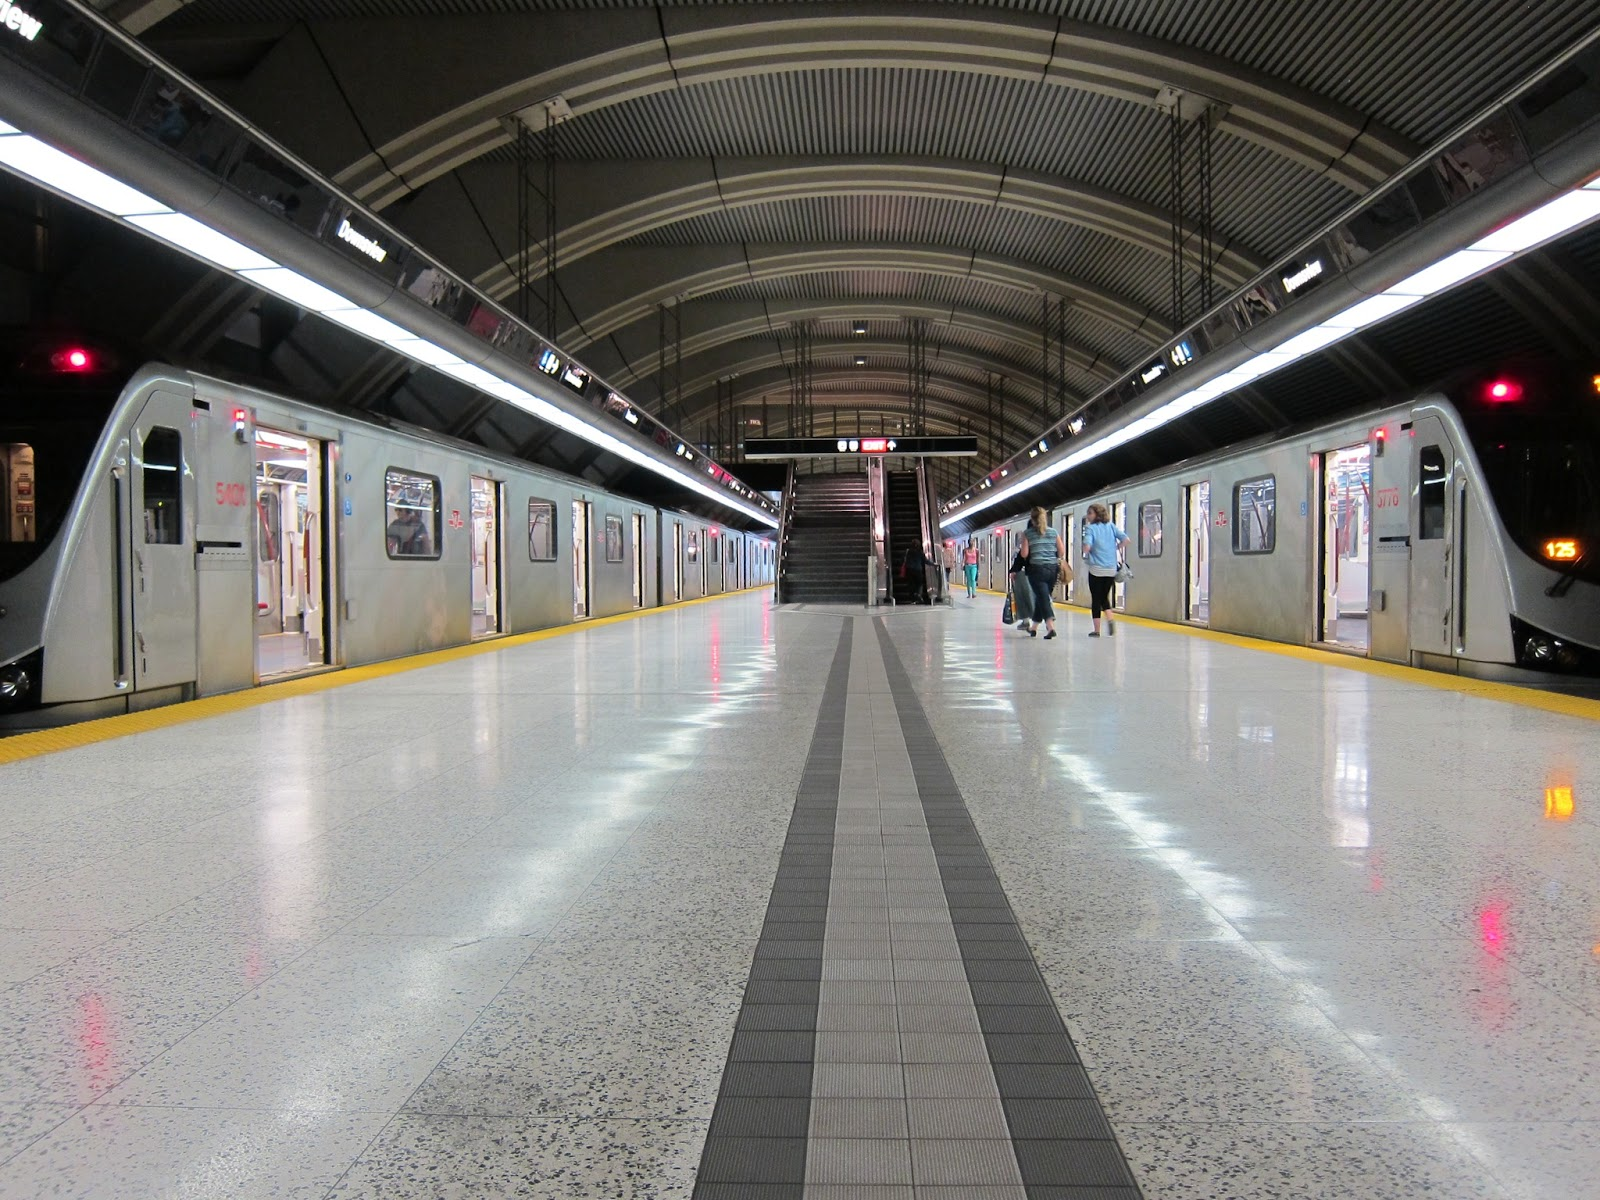 Downsview station's vaulted subway platform